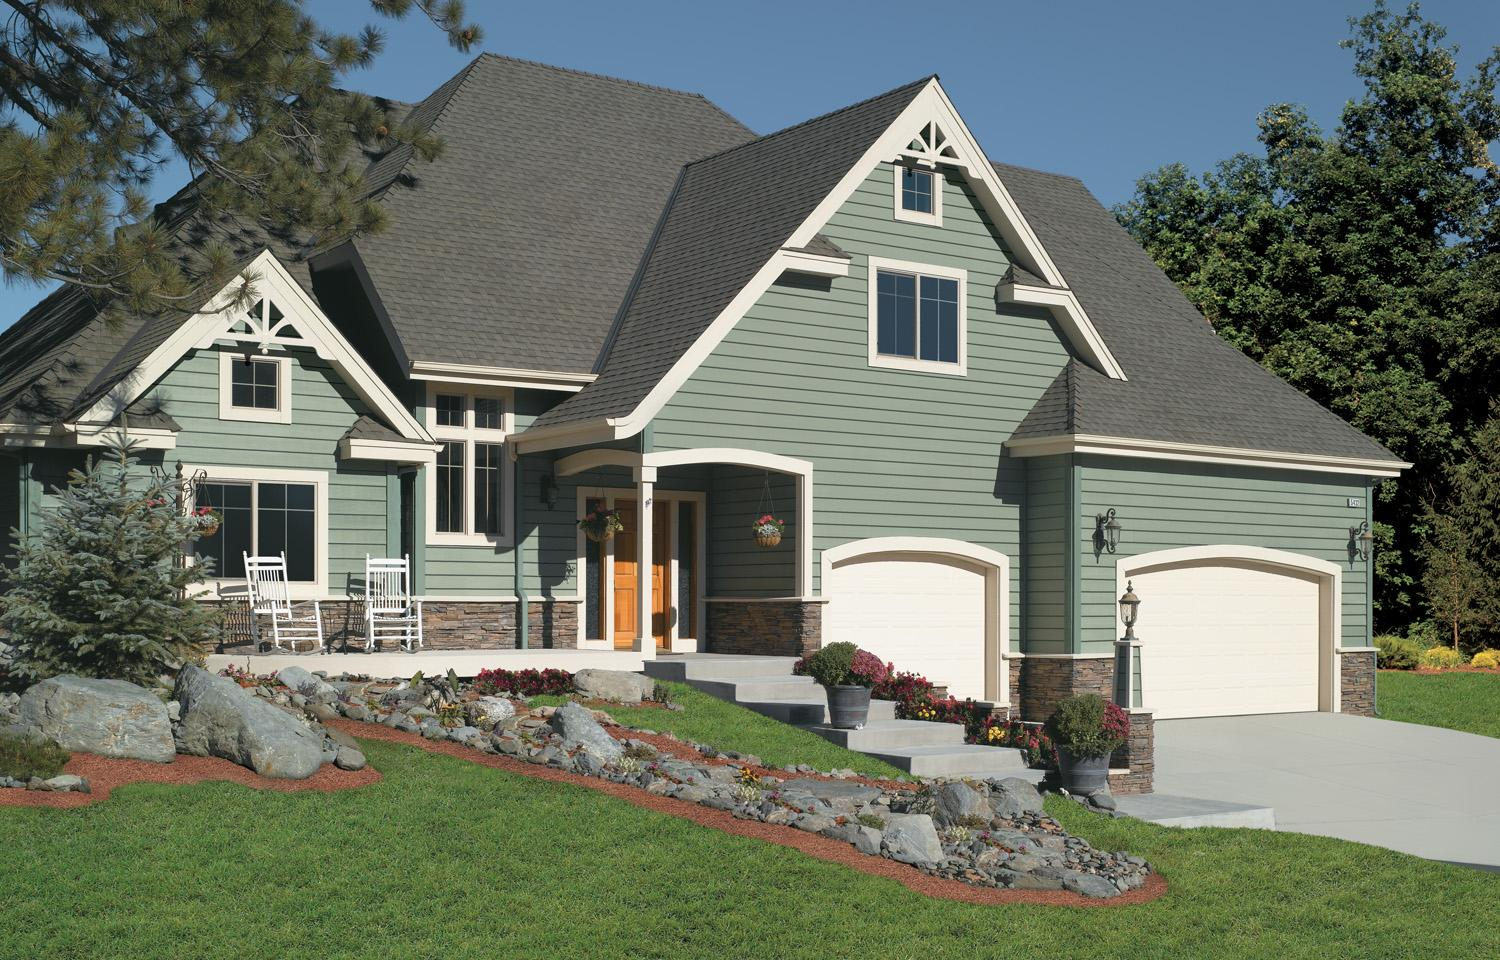 7 Popular Siding Materials To Consider: 4 Types Of Fiber Cement Siding For Your Home (Pros And Cons